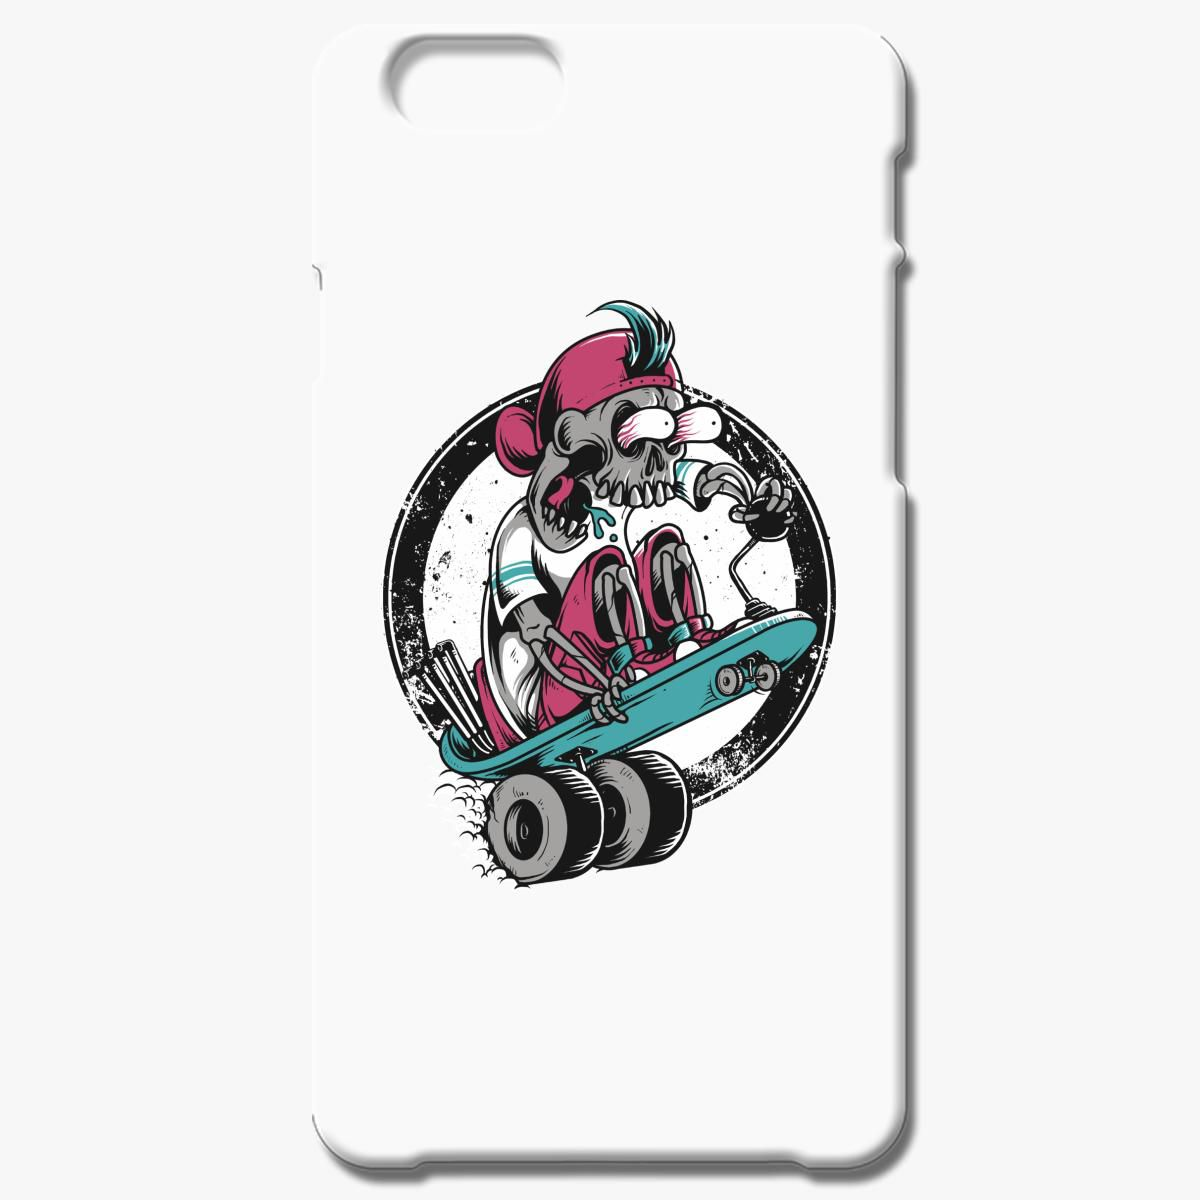 Dragboarder Iphone 6 6s Case